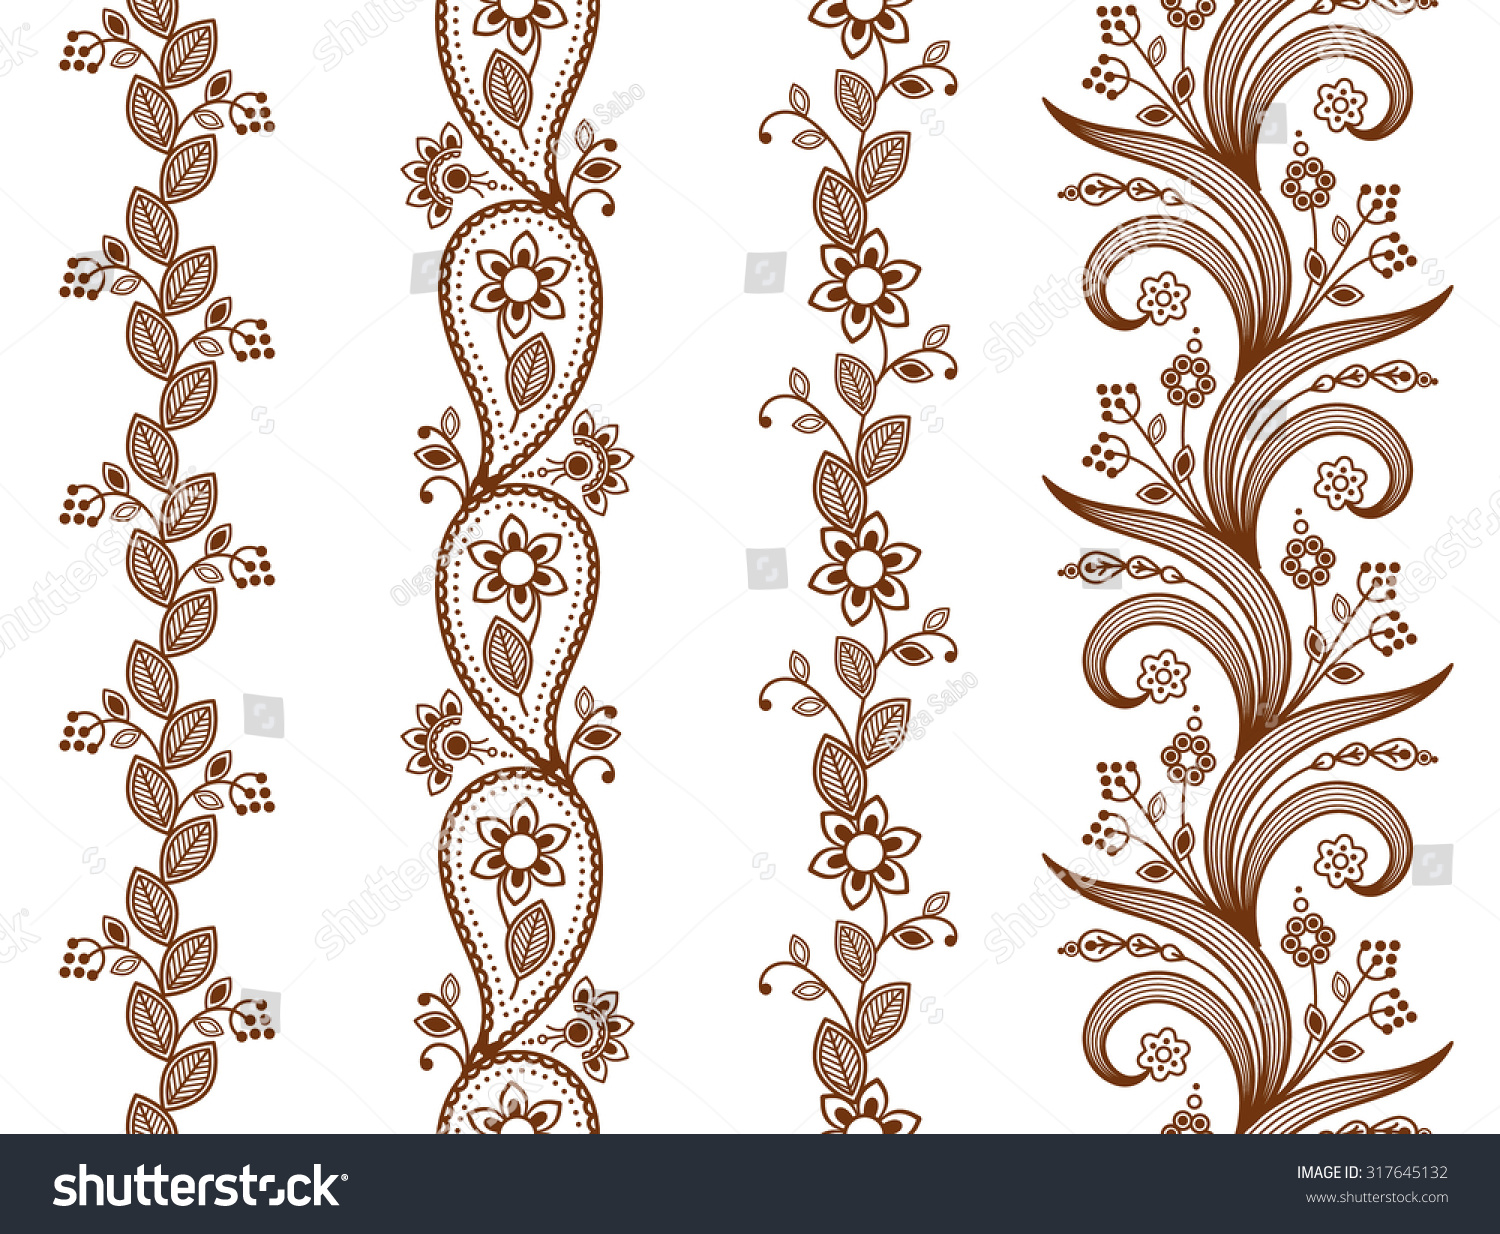 Henna ornamental seamless borders Mehndi style.Four floral one-color borders vertical seamless pattern Smartly layered